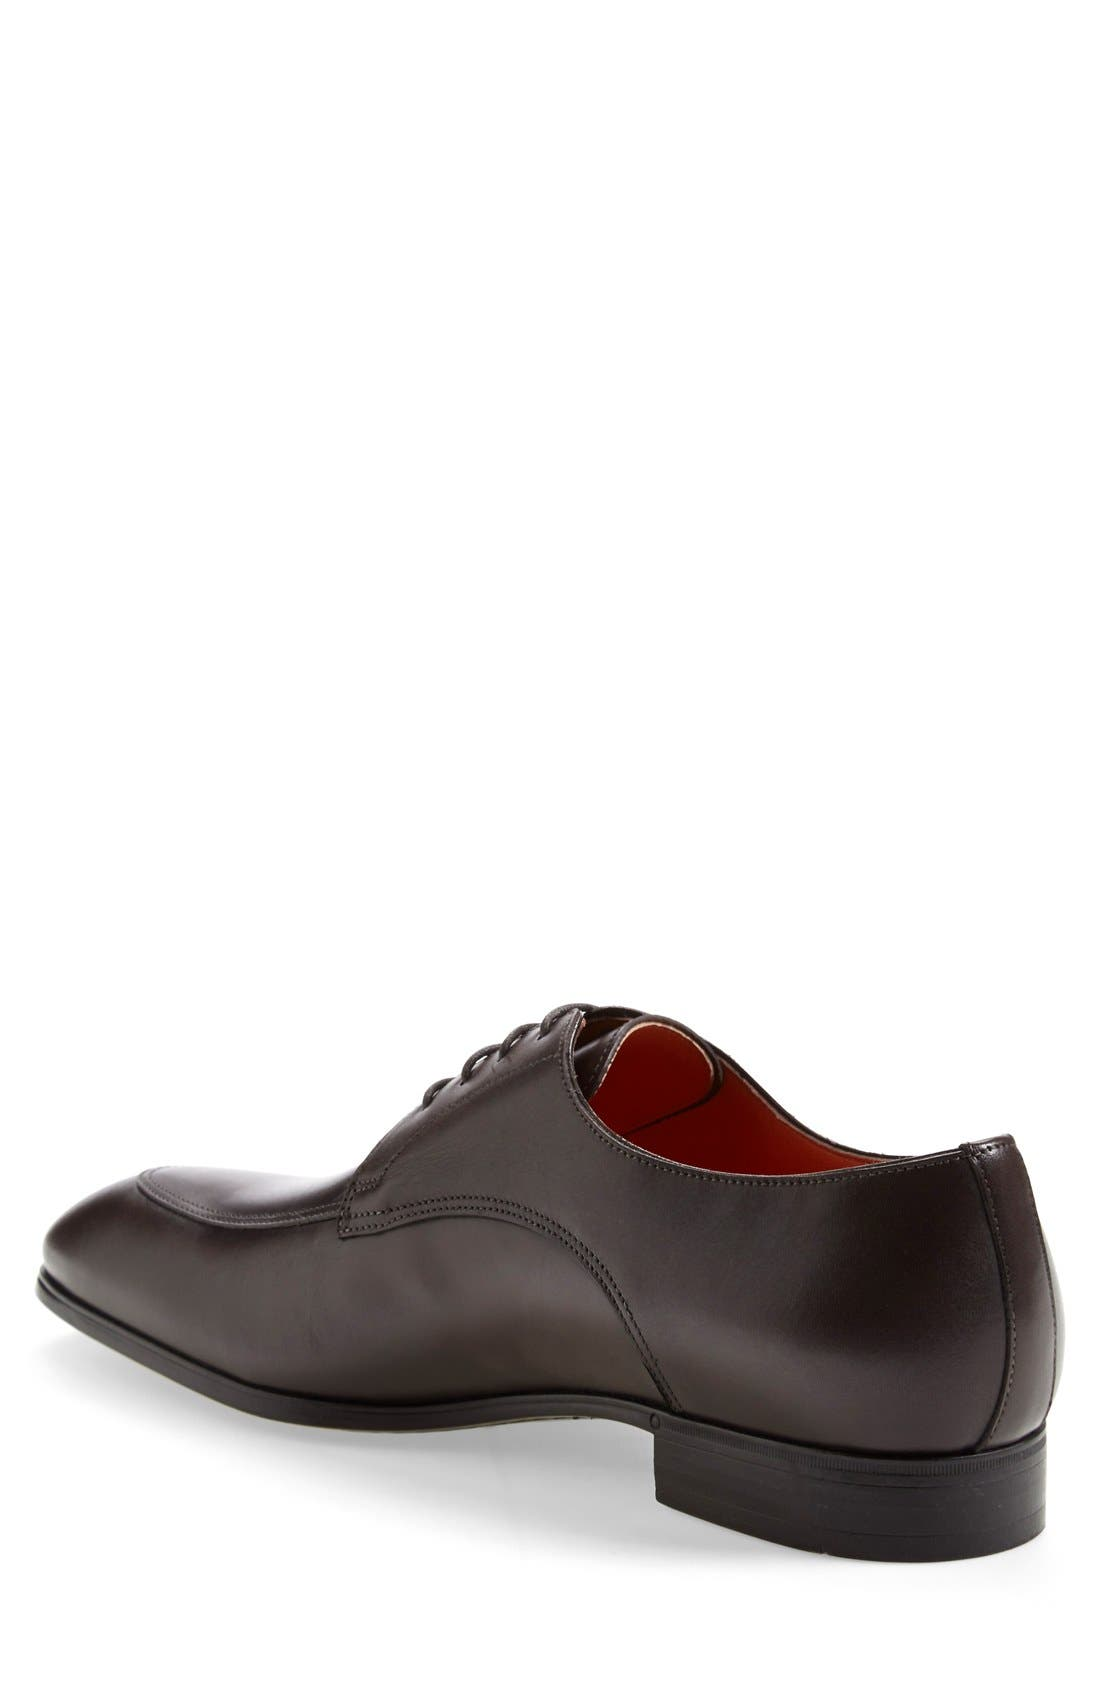 'Atwood' Apron Toe Derby,                             Alternate thumbnail 8, color,